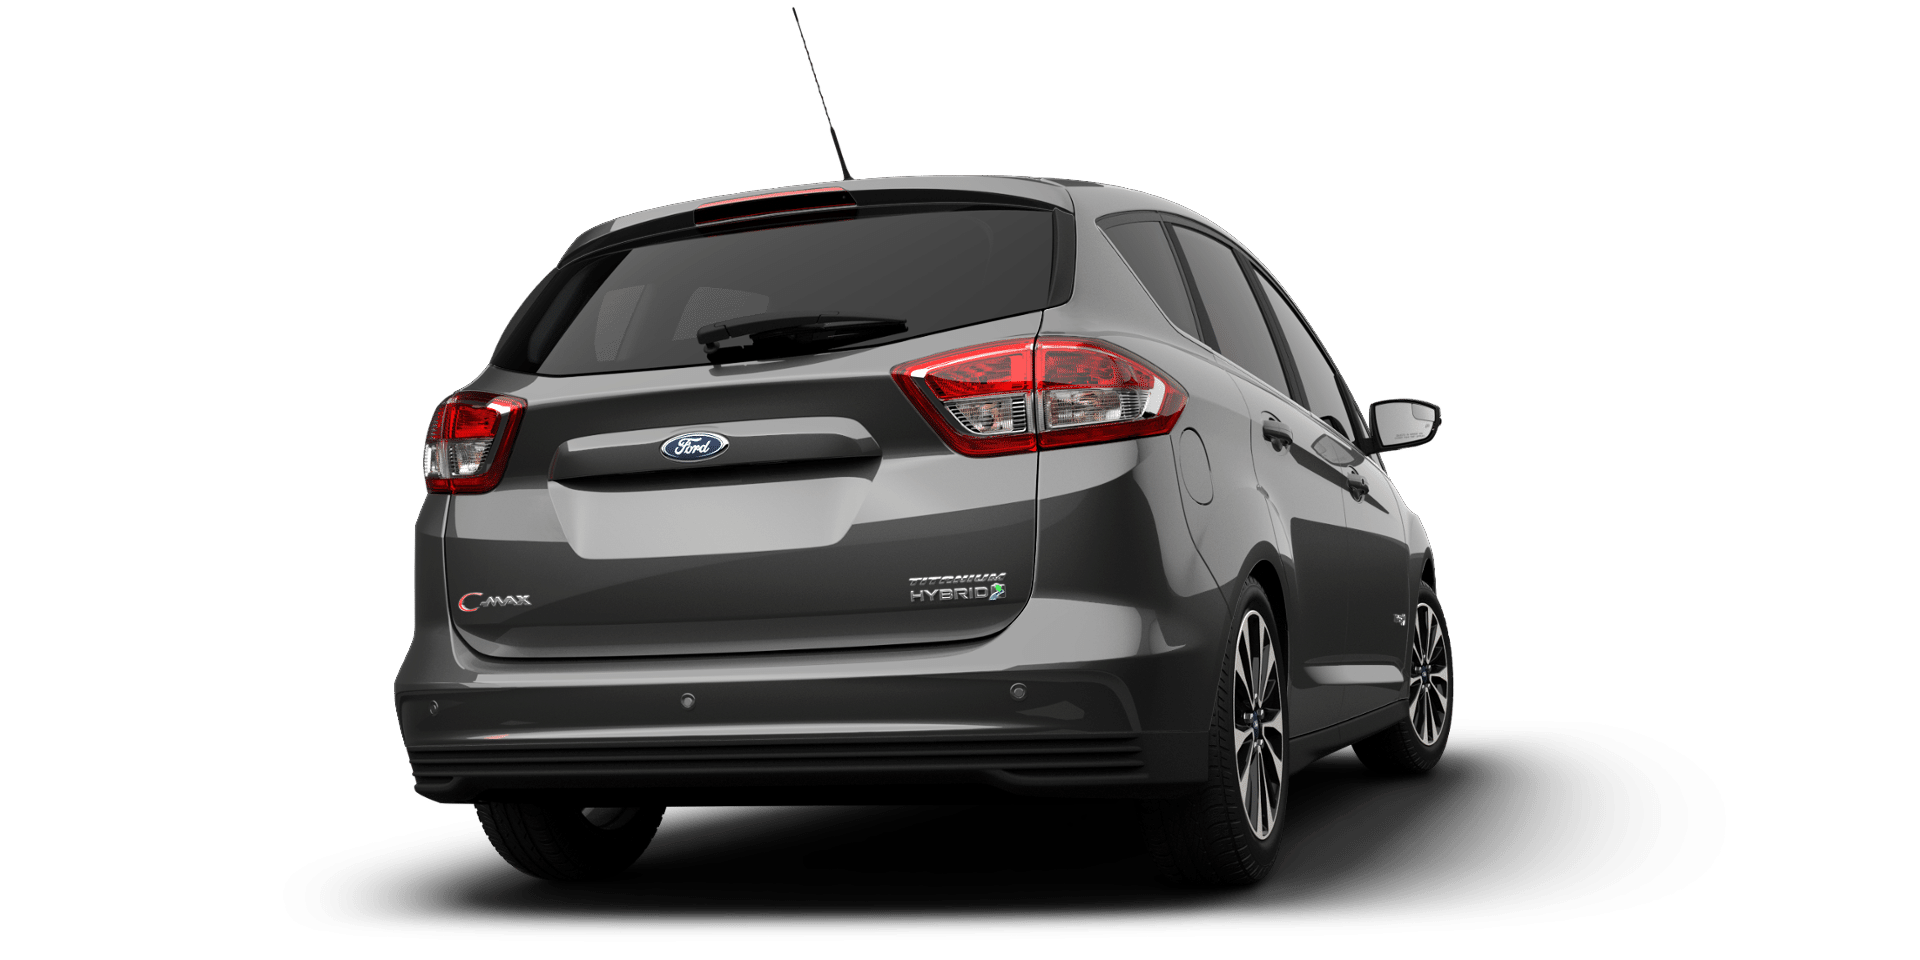 ford c max energi titanium 2017 exterior image gallery pictures photos. Black Bedroom Furniture Sets. Home Design Ideas